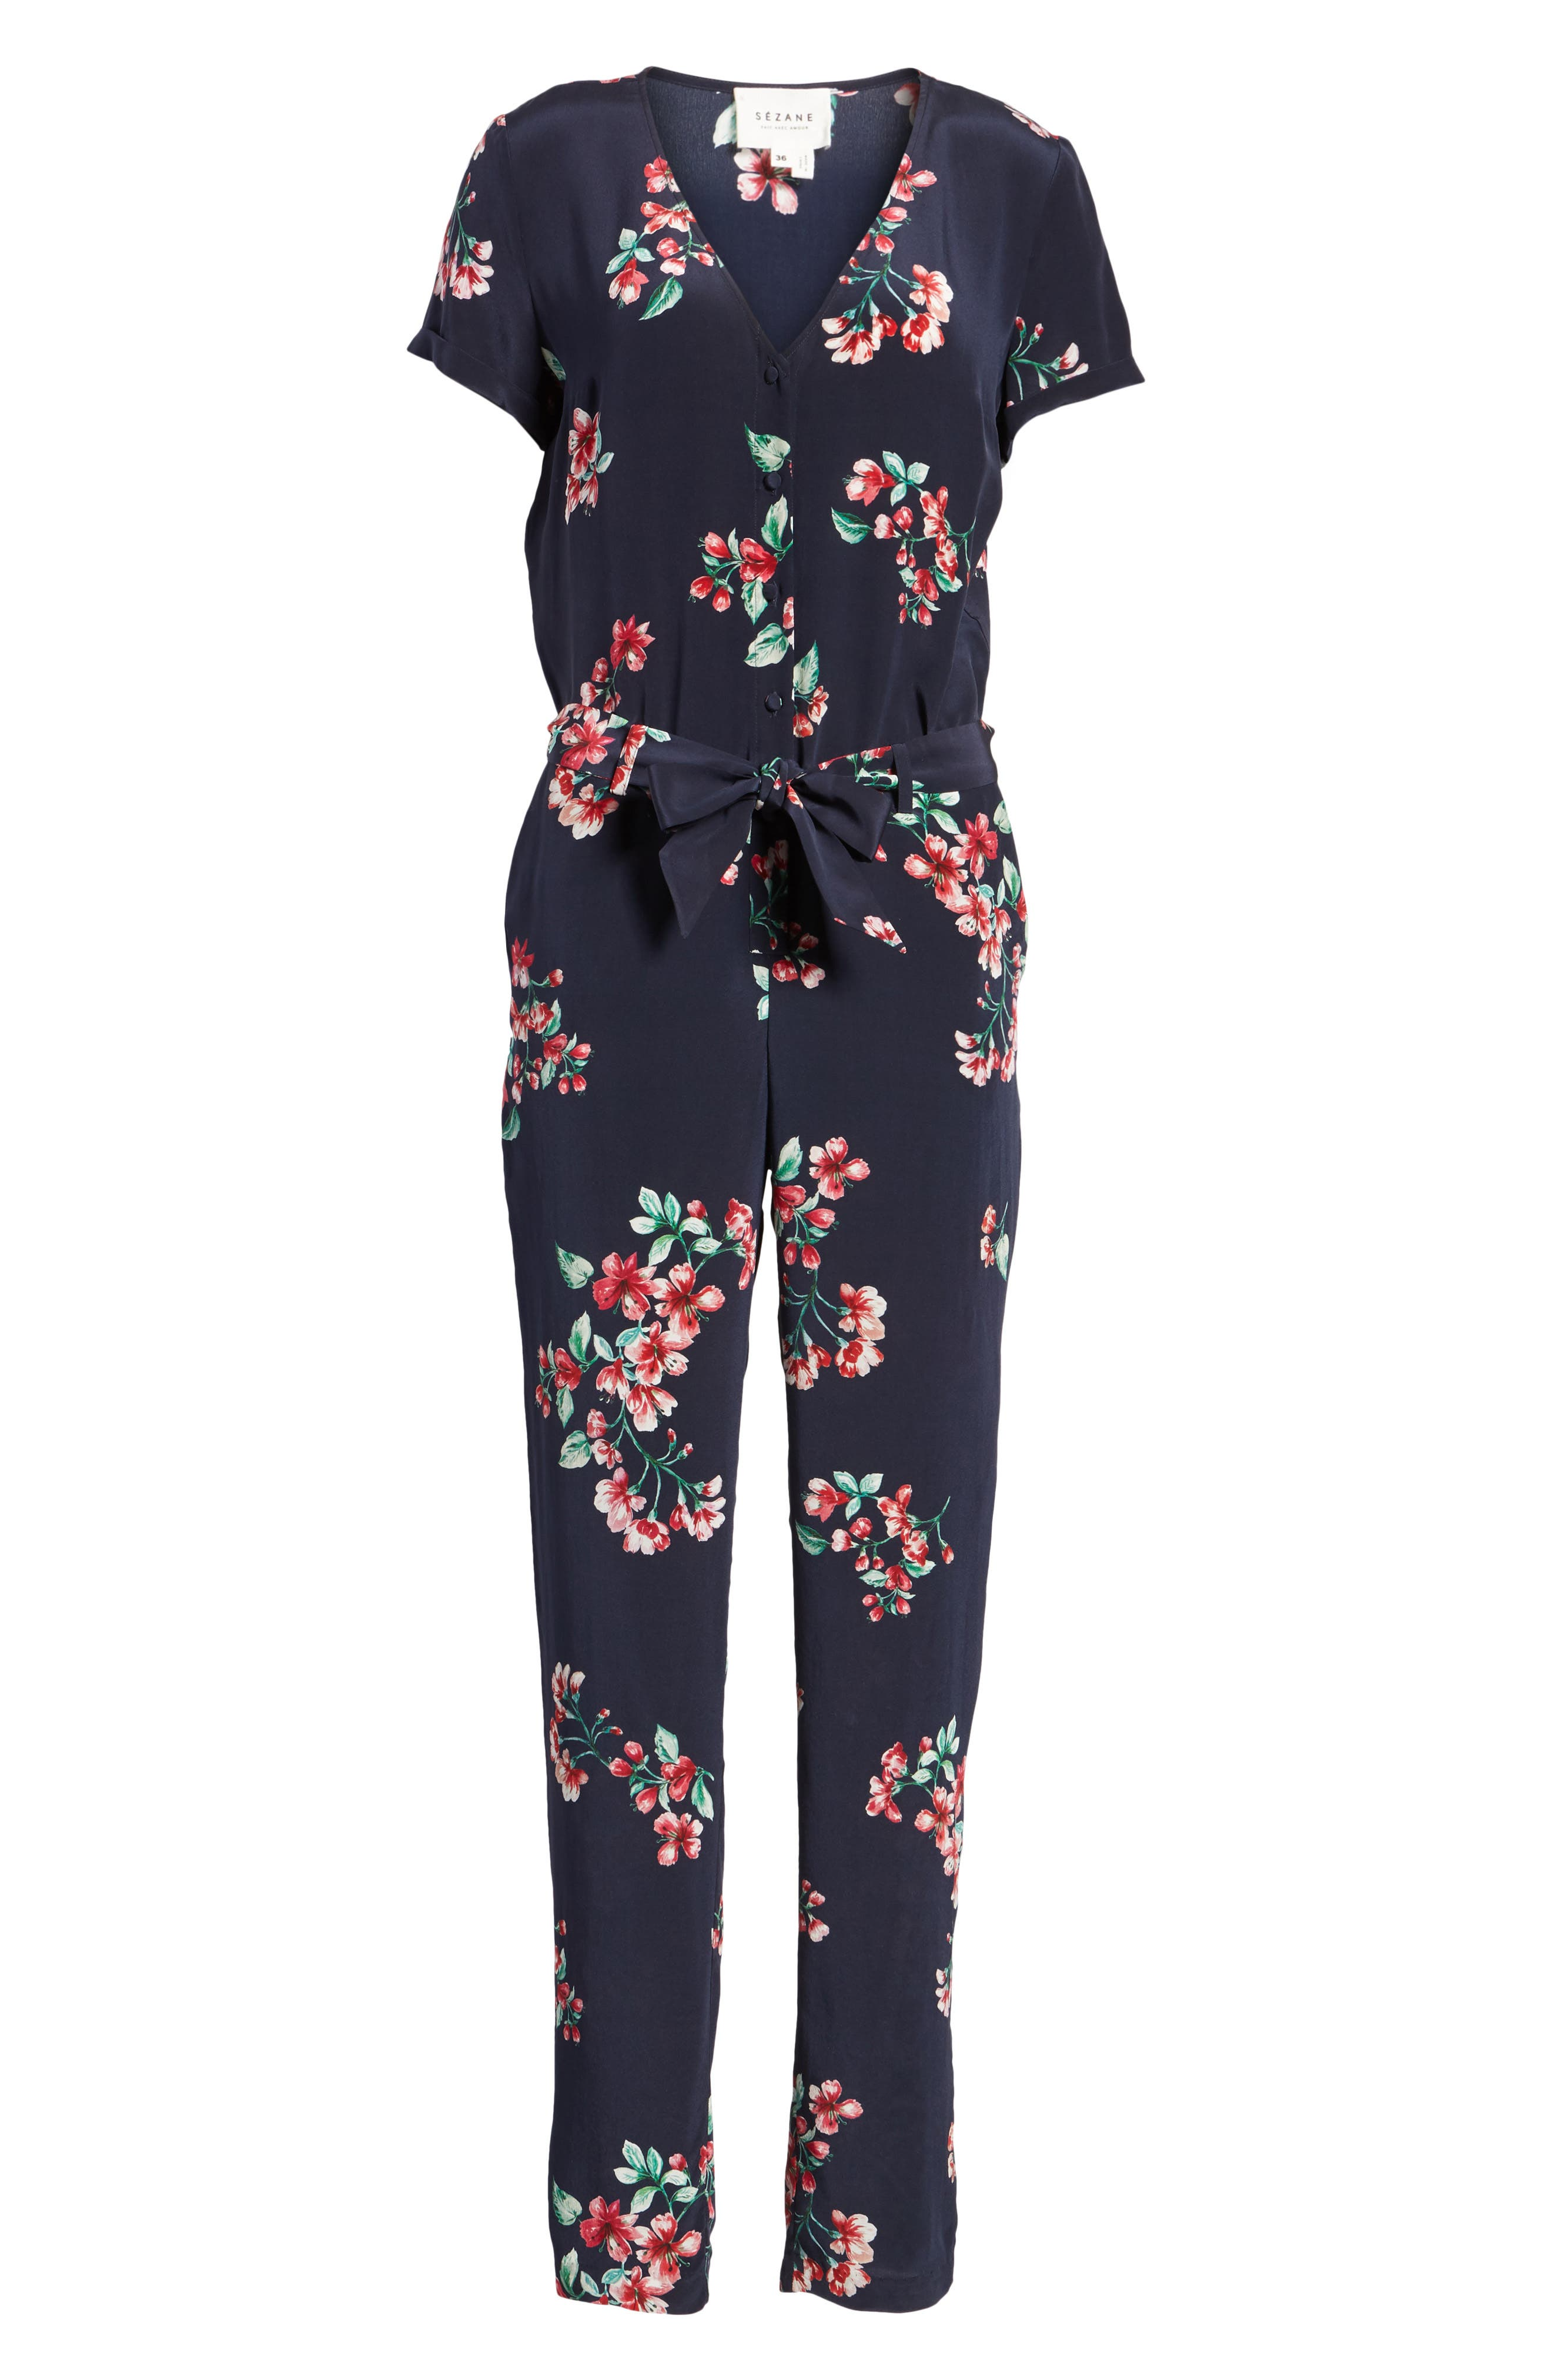 Ava Floral Silk Jumpsuit,                             Alternate thumbnail 7, color,                             Bouquet Print On Navy Blue